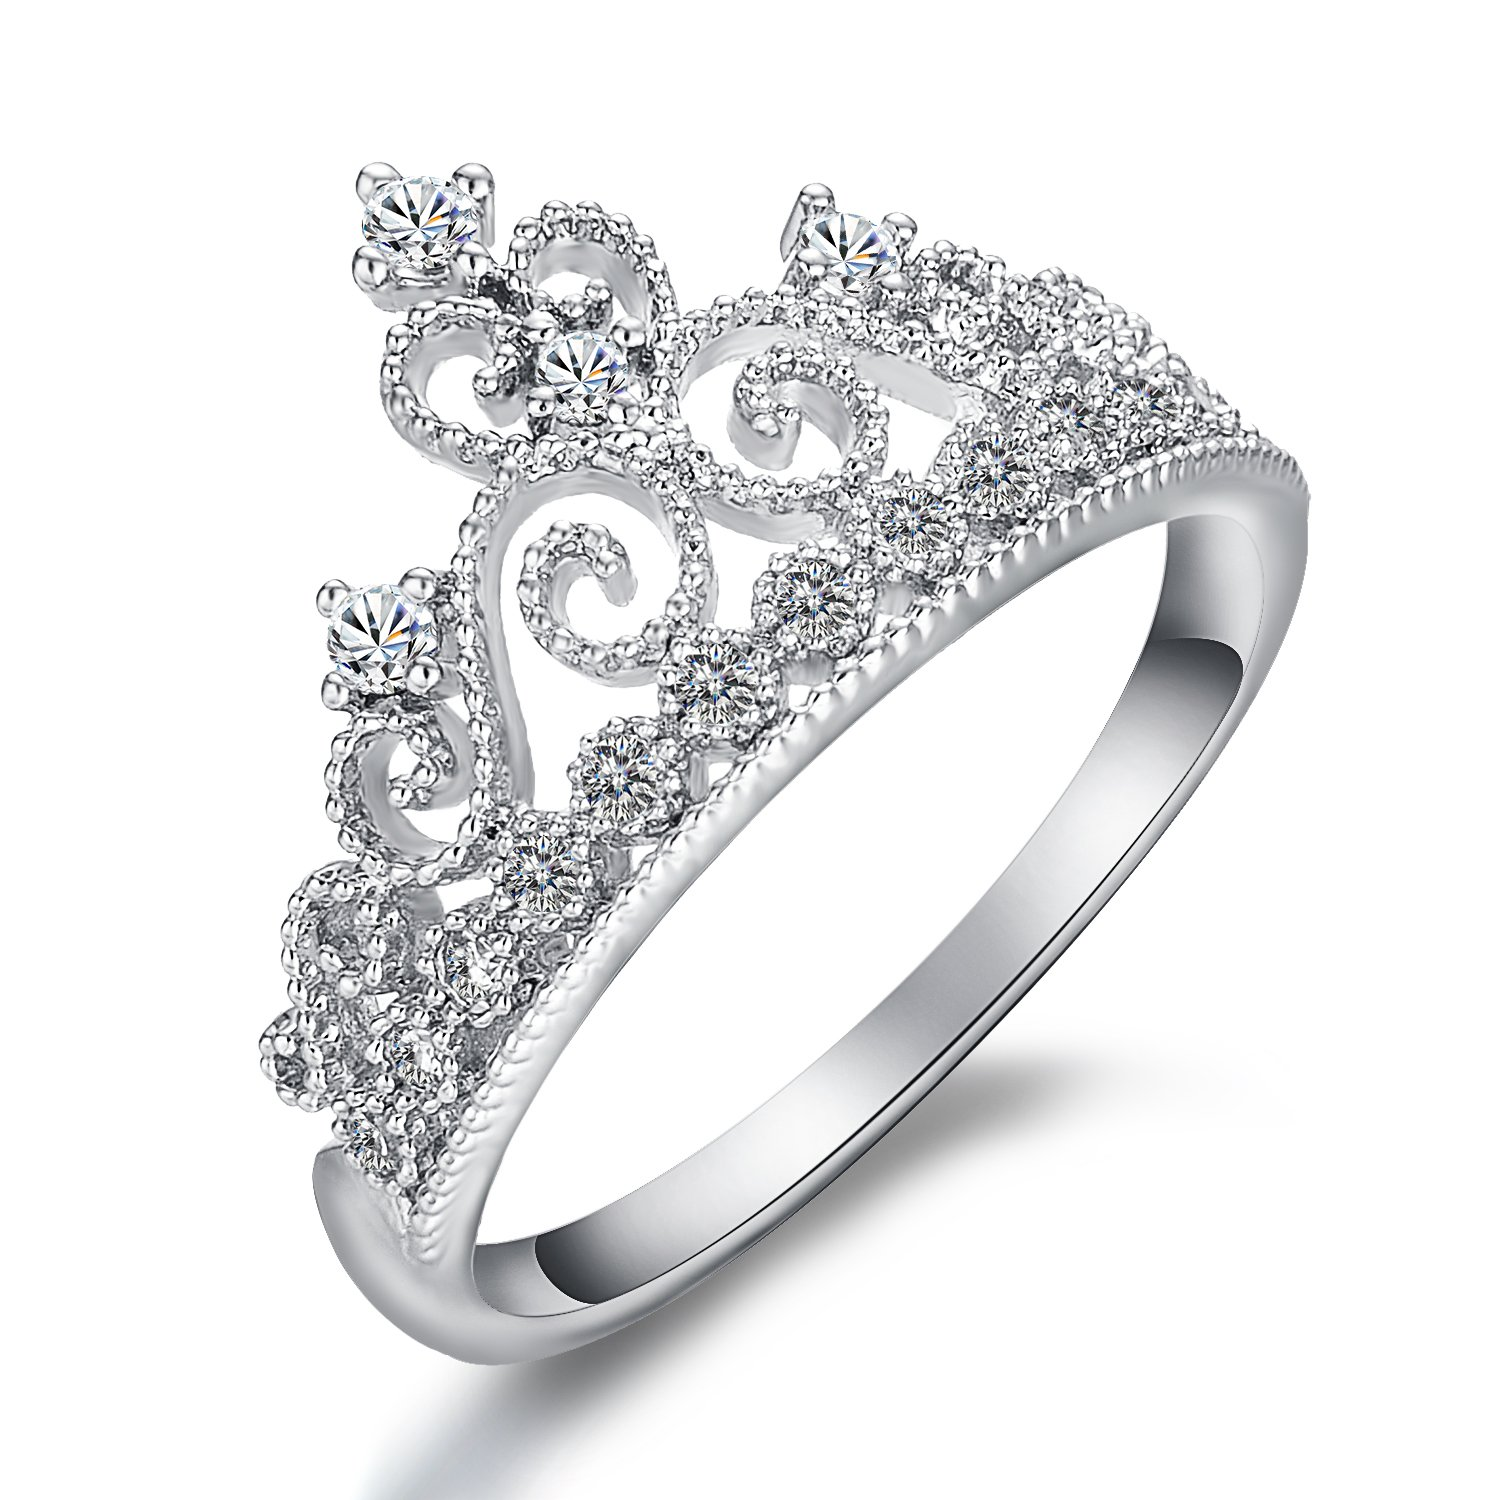 Yoursfs Princess Crown Ring For Women Tiny Cubic Zirconia CZ Accented Fashion Ring (White Gold, 5.5)